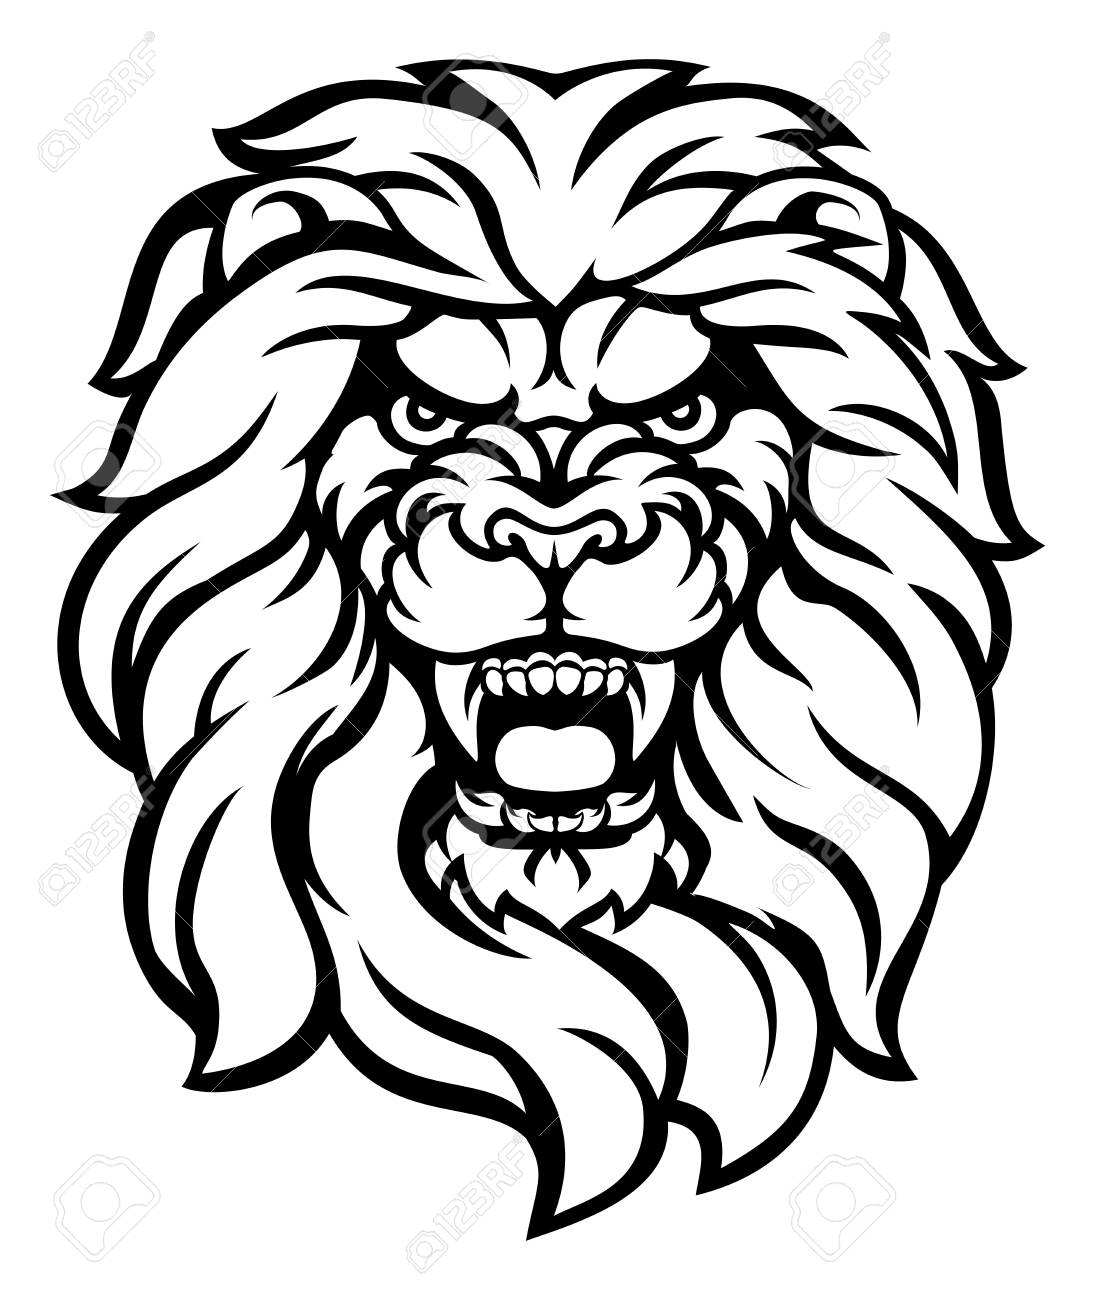 1095x1300 Collection Of Free Etched Clipart Roaring Lion Line. Download On